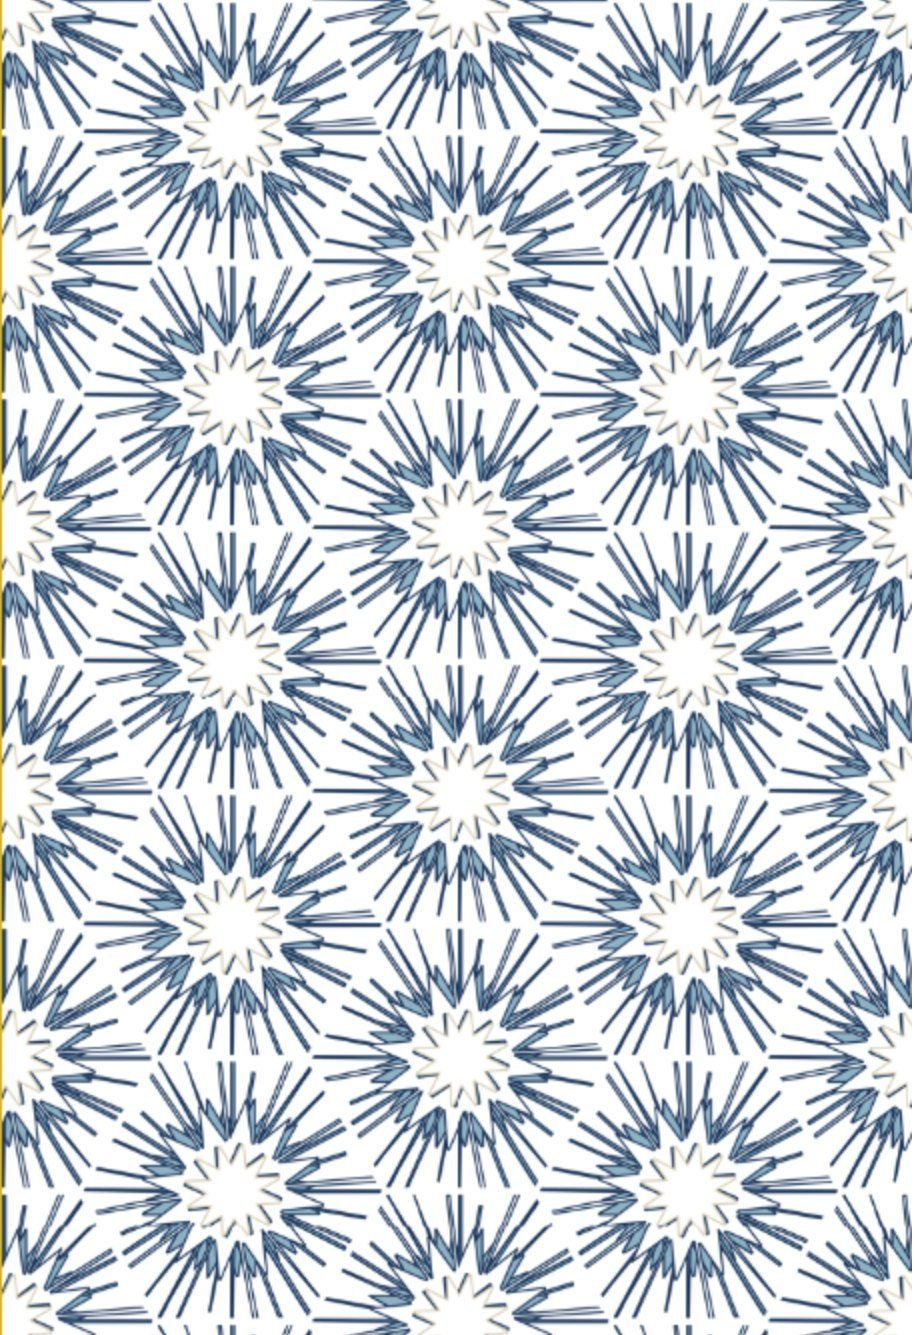 Removable Wallpaper Made In Usa Peel Stick Self Adhesive Temporary Blue And White P Removable Wallpaper Bathroom Blue And White Wallpaper Removable Wallpaper